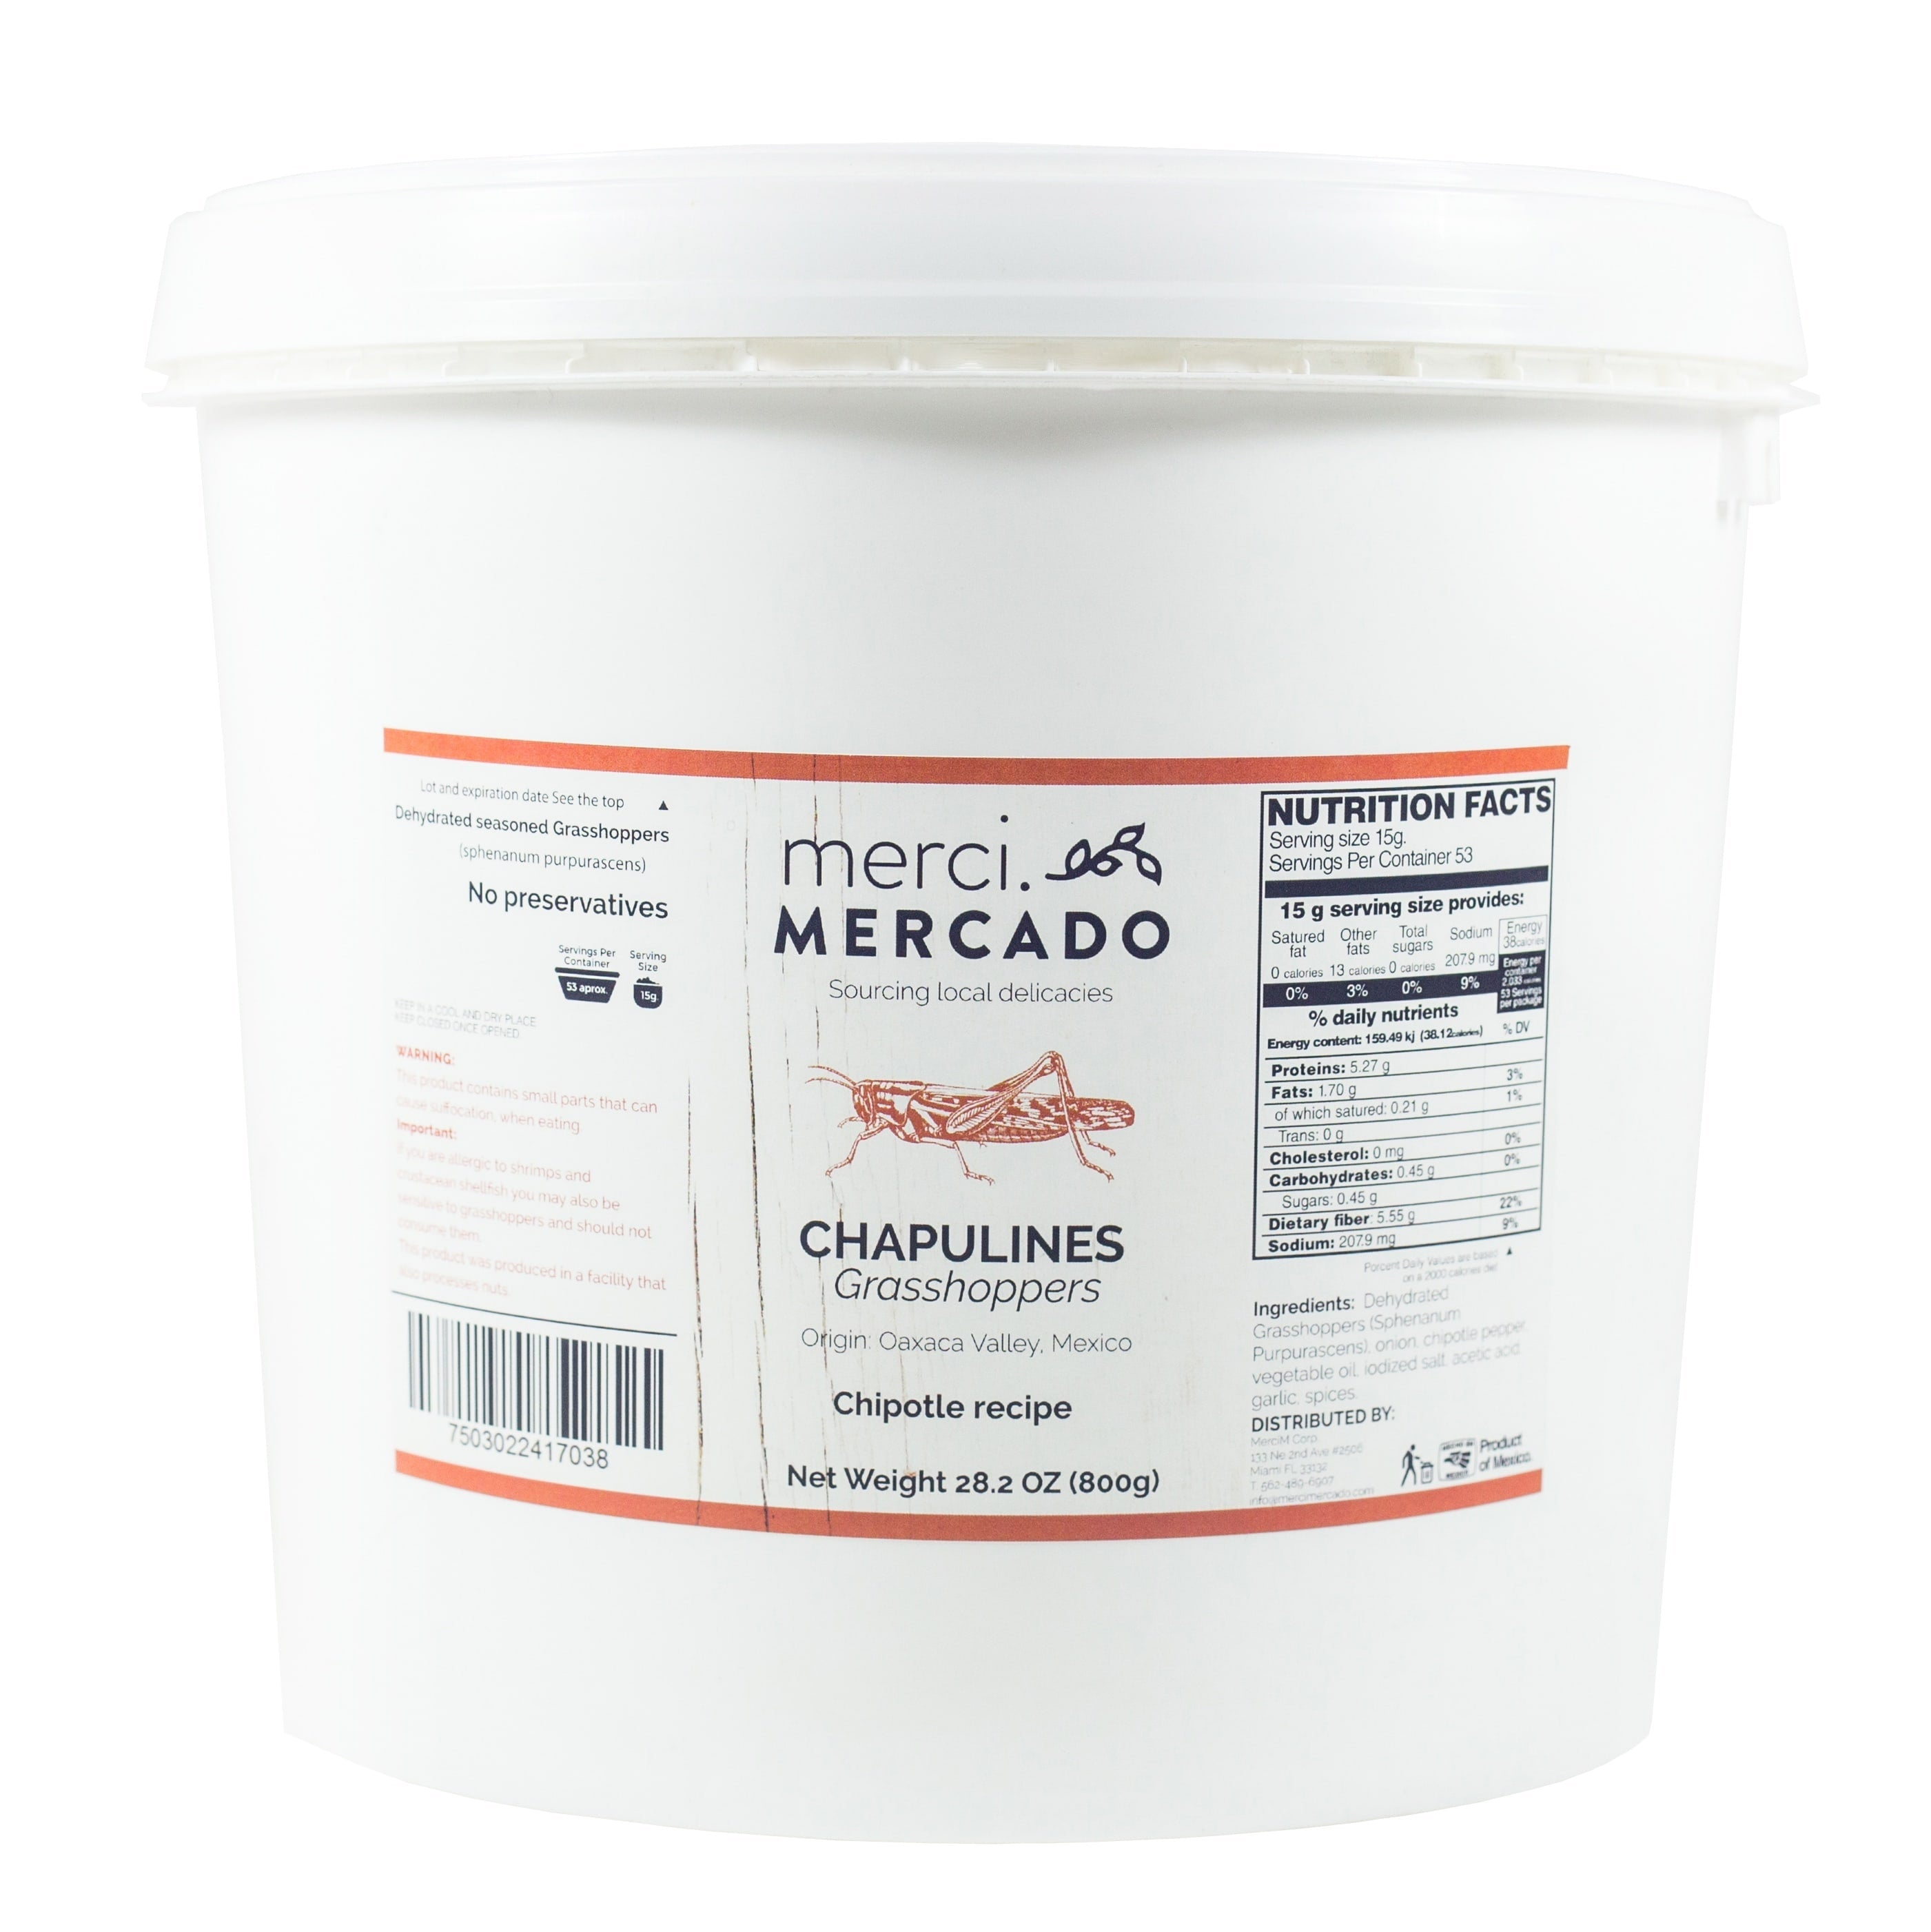 MerciMercado Chapulines Chipotle Recipe 28.2 Oz